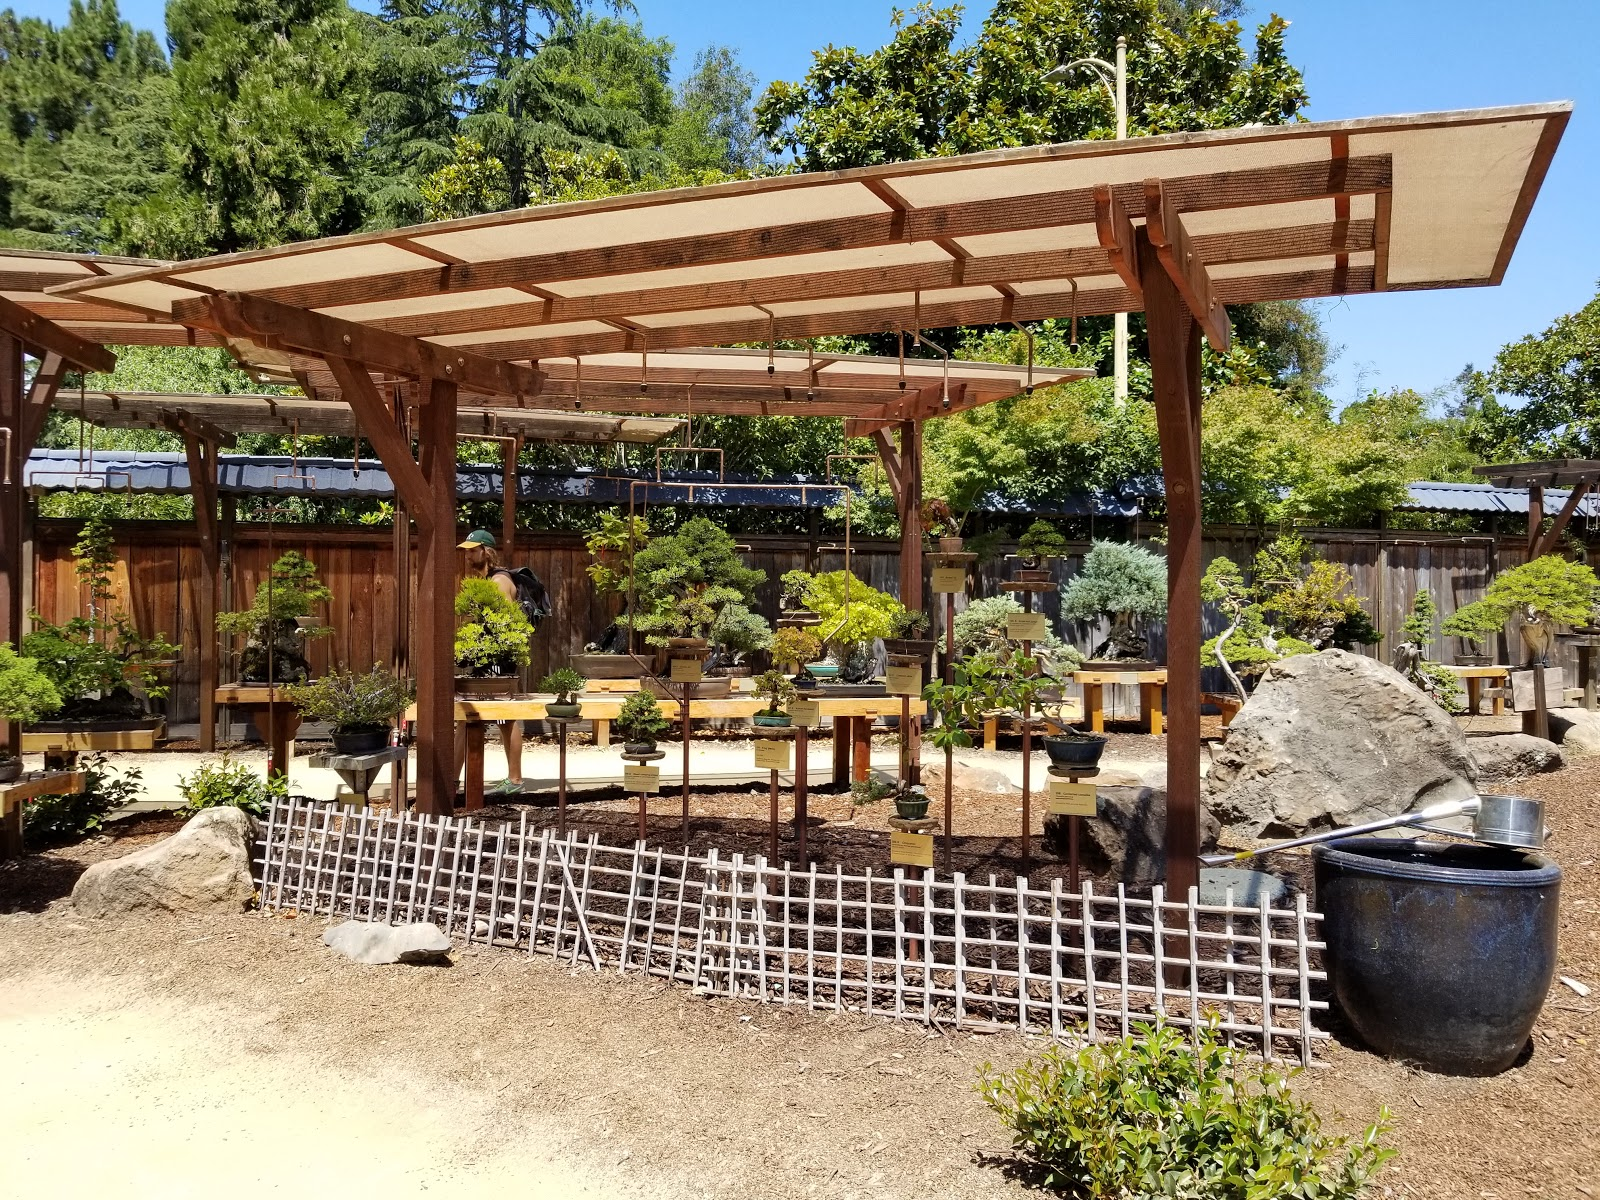 Visit Gsbf Bonsai Garden At Lake Merritt On Your Trip To Oakland